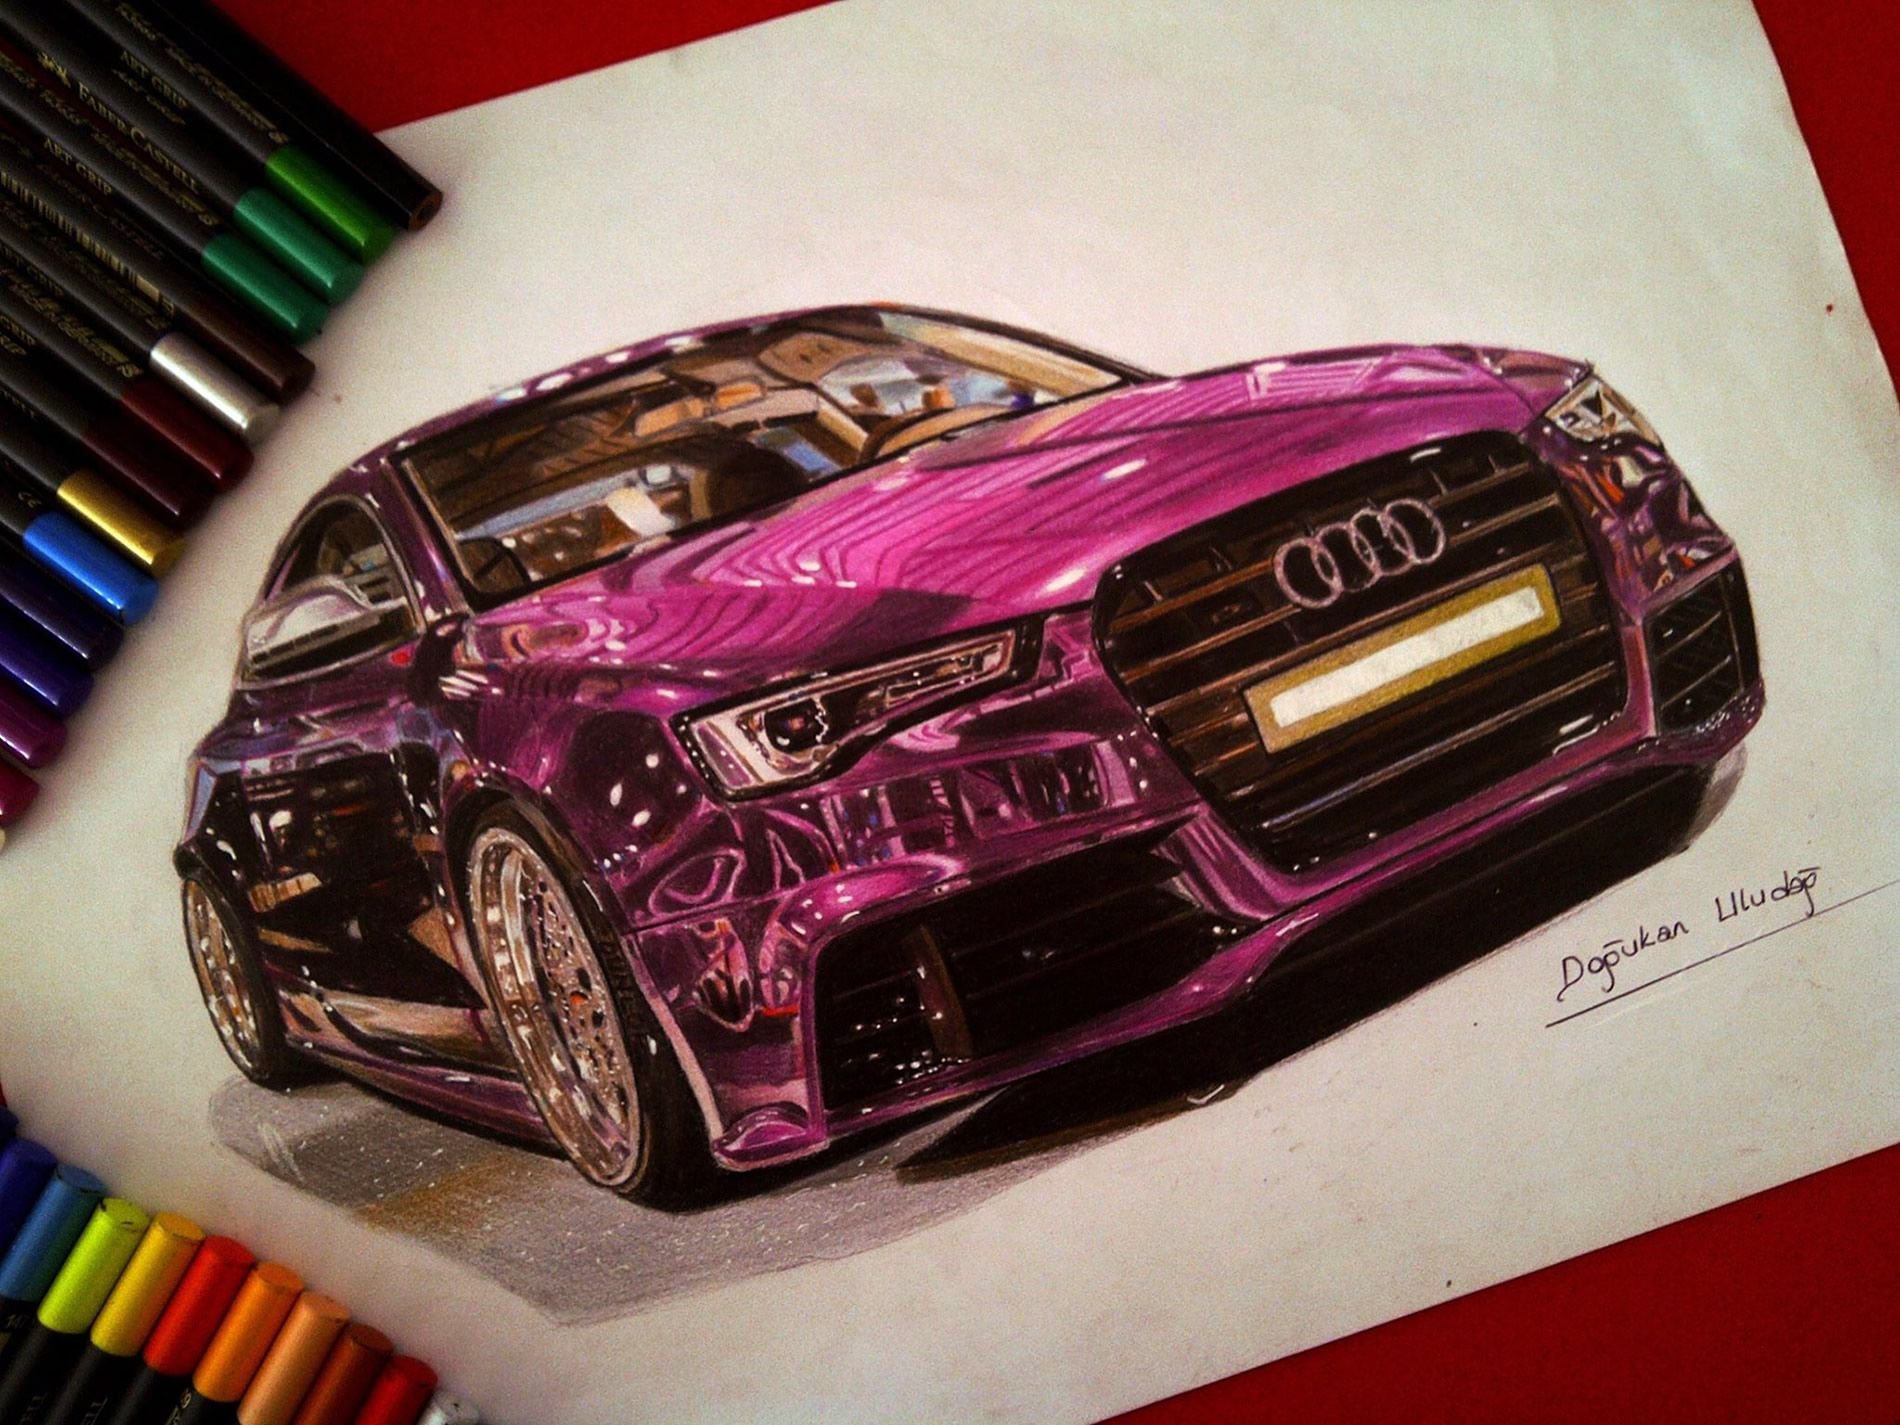 Drawings of Ultra Shiny Automobiles Illusions, Markers